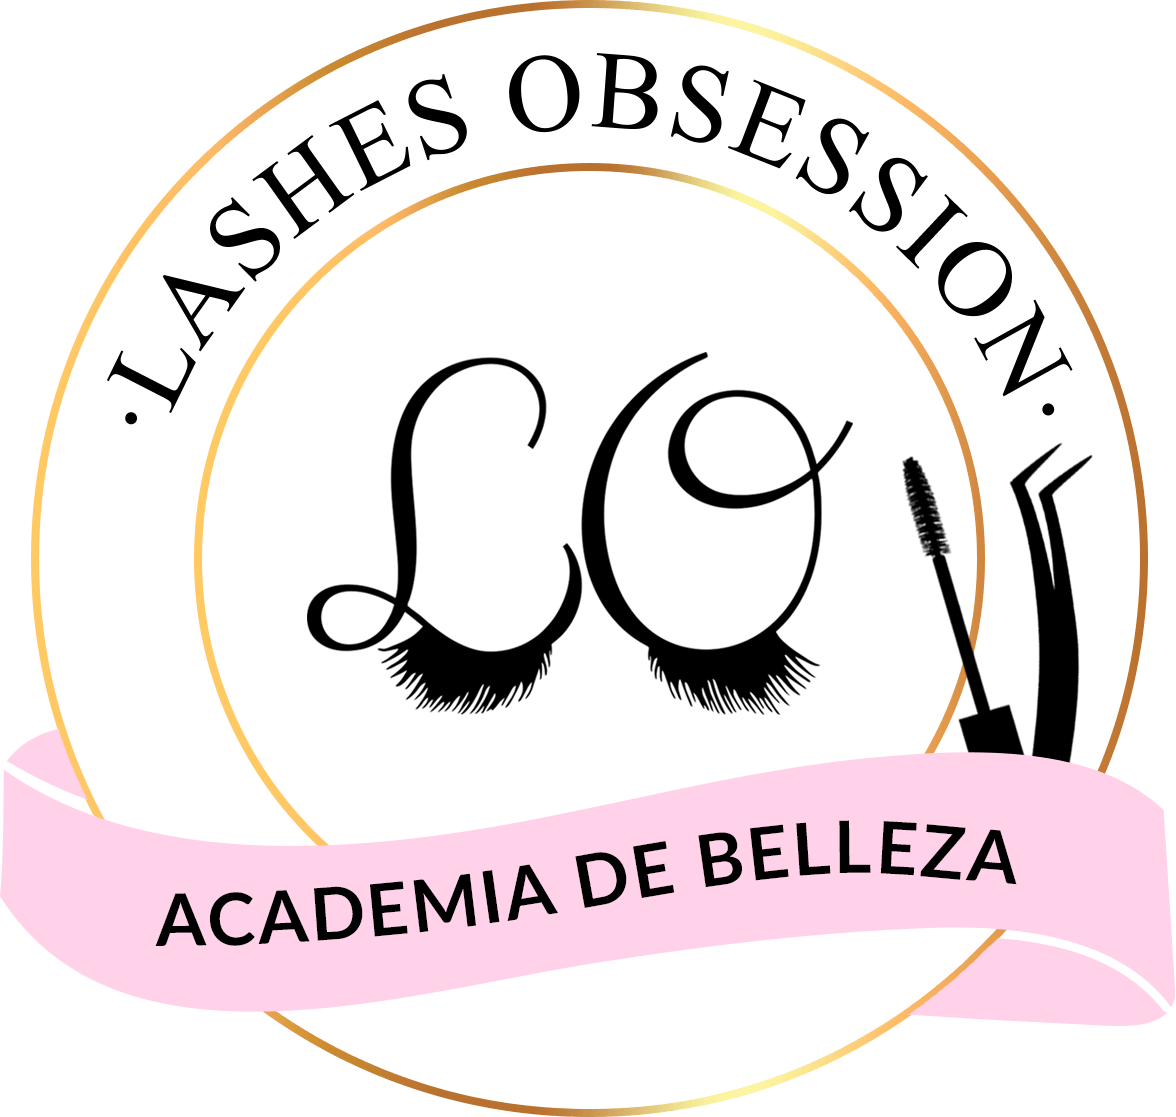 logo academia lashes obsession